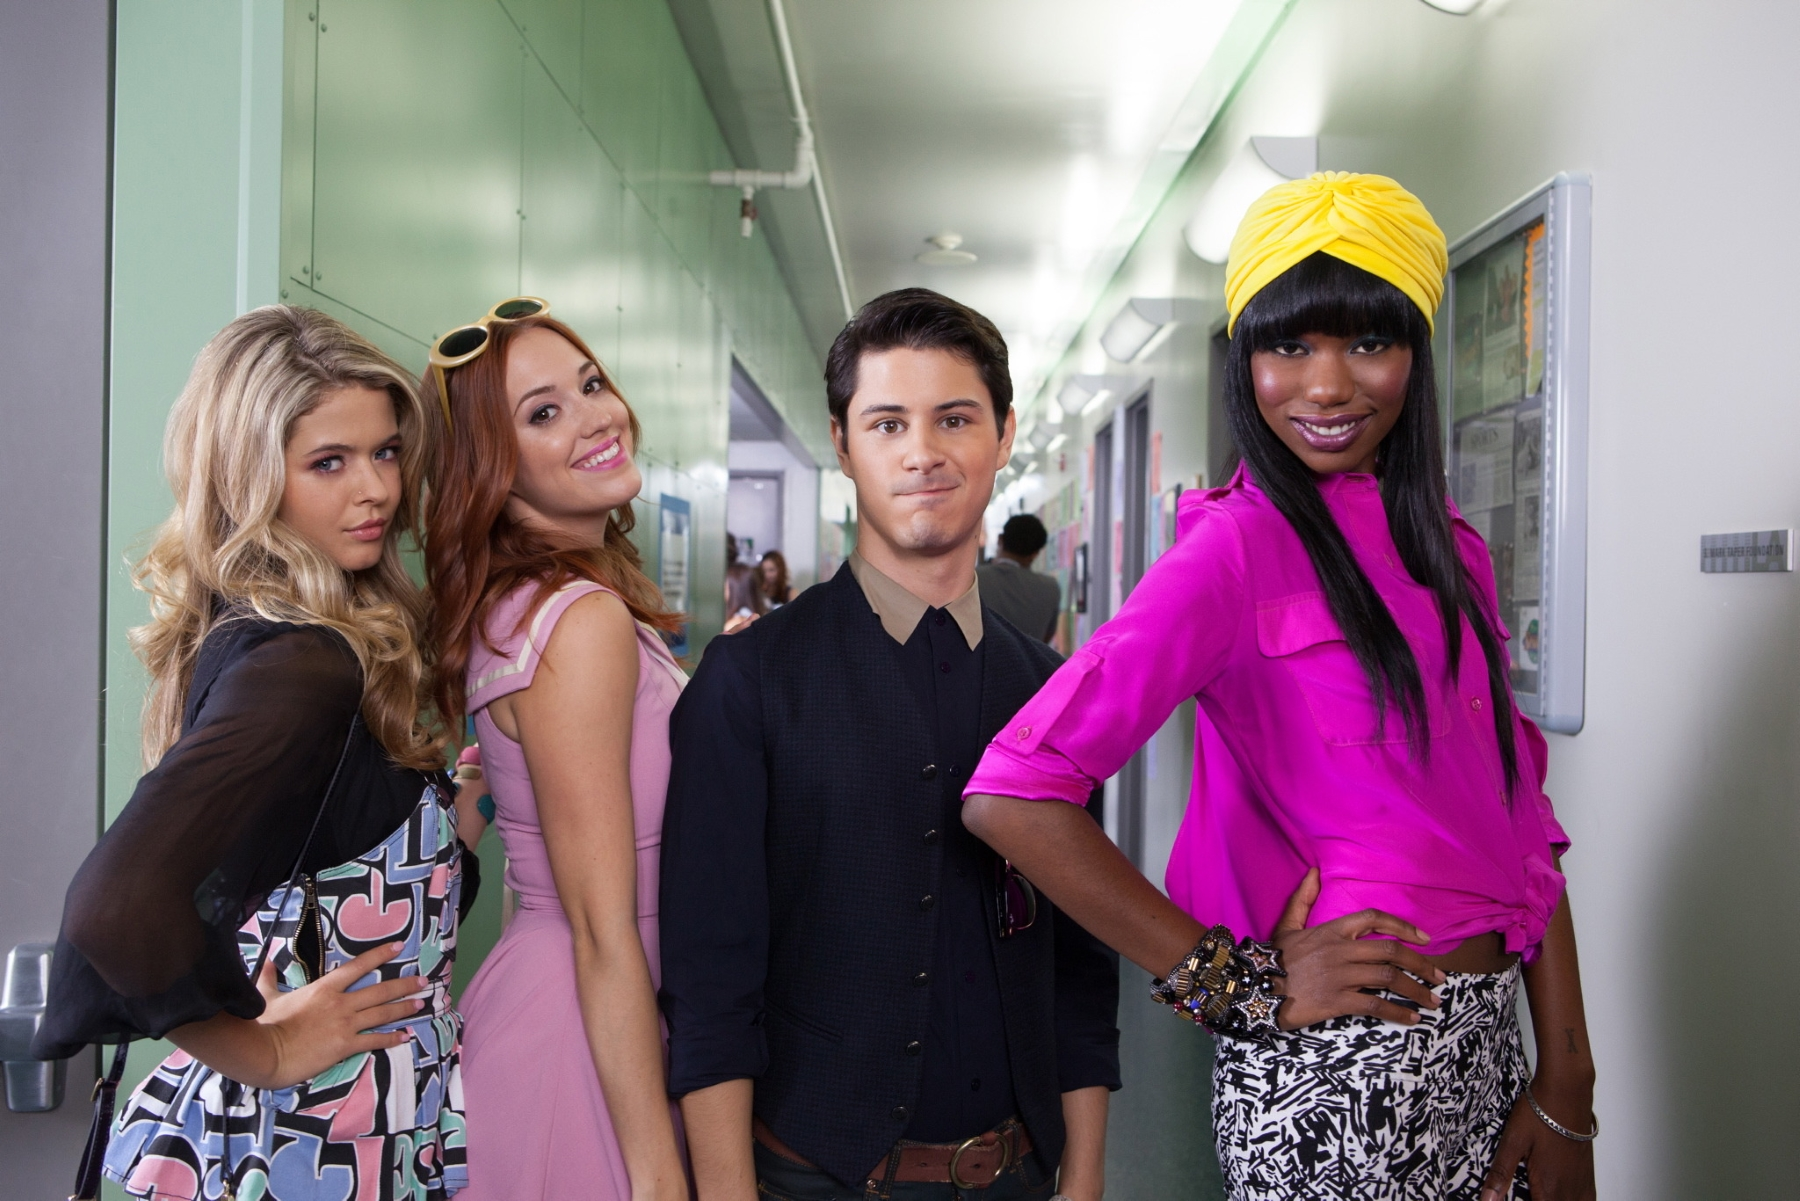 Michael, flanked by three high school girls, standing in a school hallway. The girls are all smiling, while he looks uncomfortable.